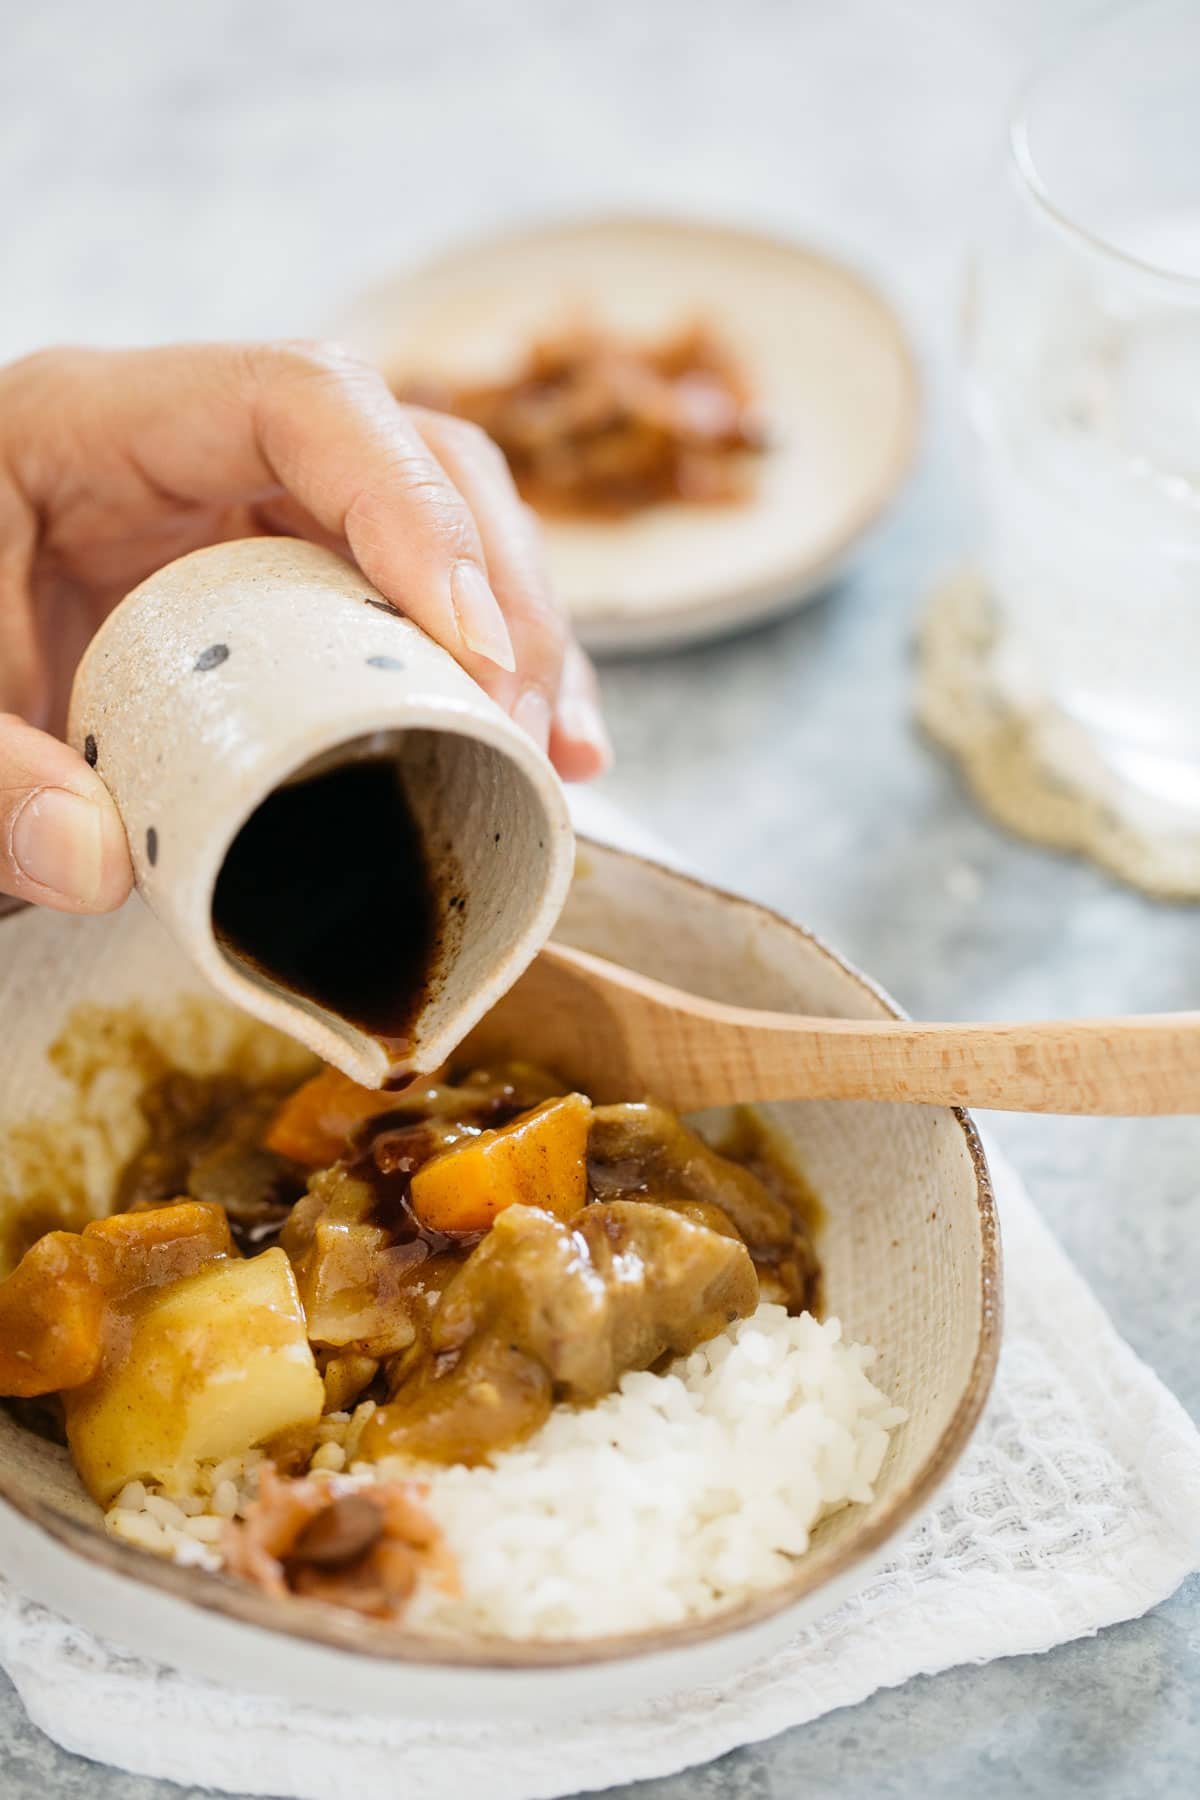 pouring worcestershire sauce over Japanese curry rice